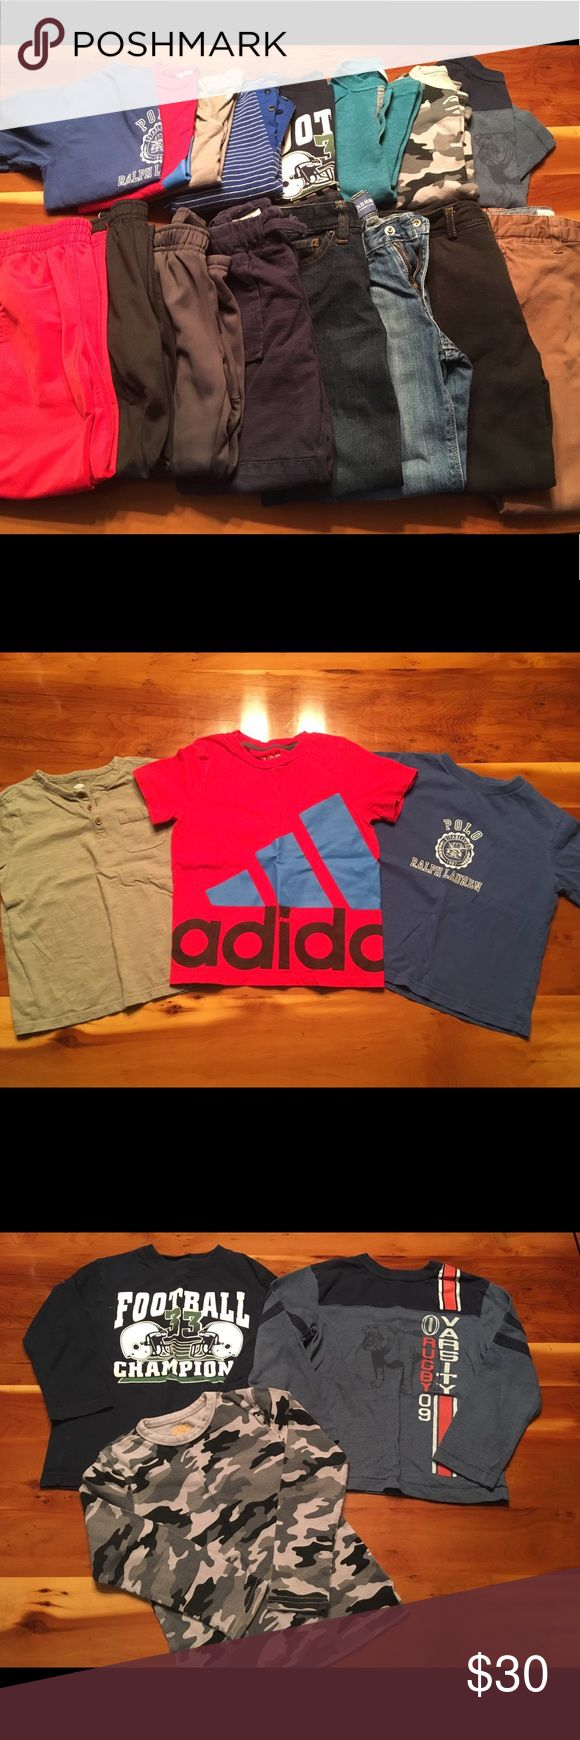 S 4-5 Lot Nike, Ralph Lauren, Under Armour, Adidas 16 pieces of boys clothing, 8 tops and 8 pants. All sizes 4-5. Items from Adidas, Nike, Under Armour, Hatley, Ralph Lauren, Cat & Jack, Old Navy, Children's Place, Andy & Evan, Harper Canyon (Nordstrom)  ❤️All in excellent condition with minimal wash wear! Only used last season ❤️  🎀Bundle discount of 20% on 2 or more items!  🎀Item will be packed and ready to ship with 24 hours of purchase Polo by Ralph Lauren Matching Sets